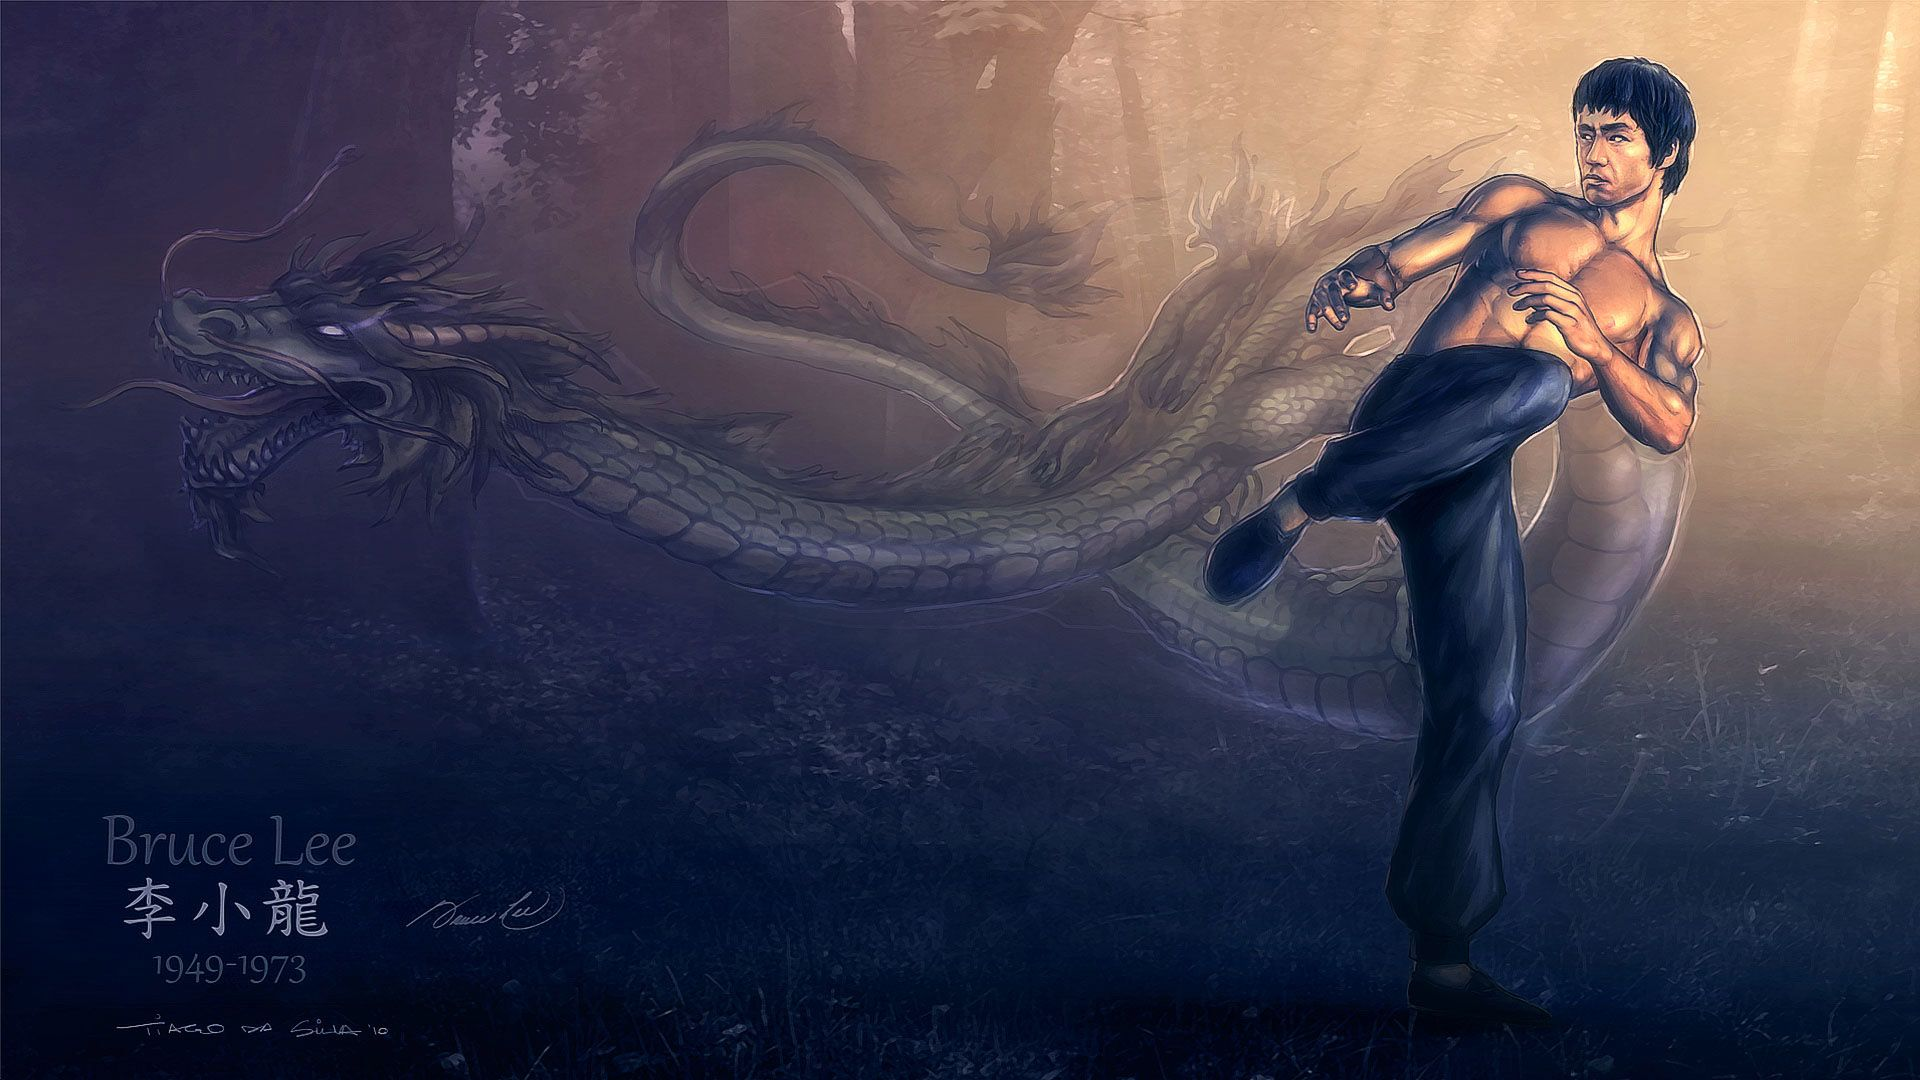 1920x1080 Pictures of Martial Arts Wallpaper Anime - kidskunst.info